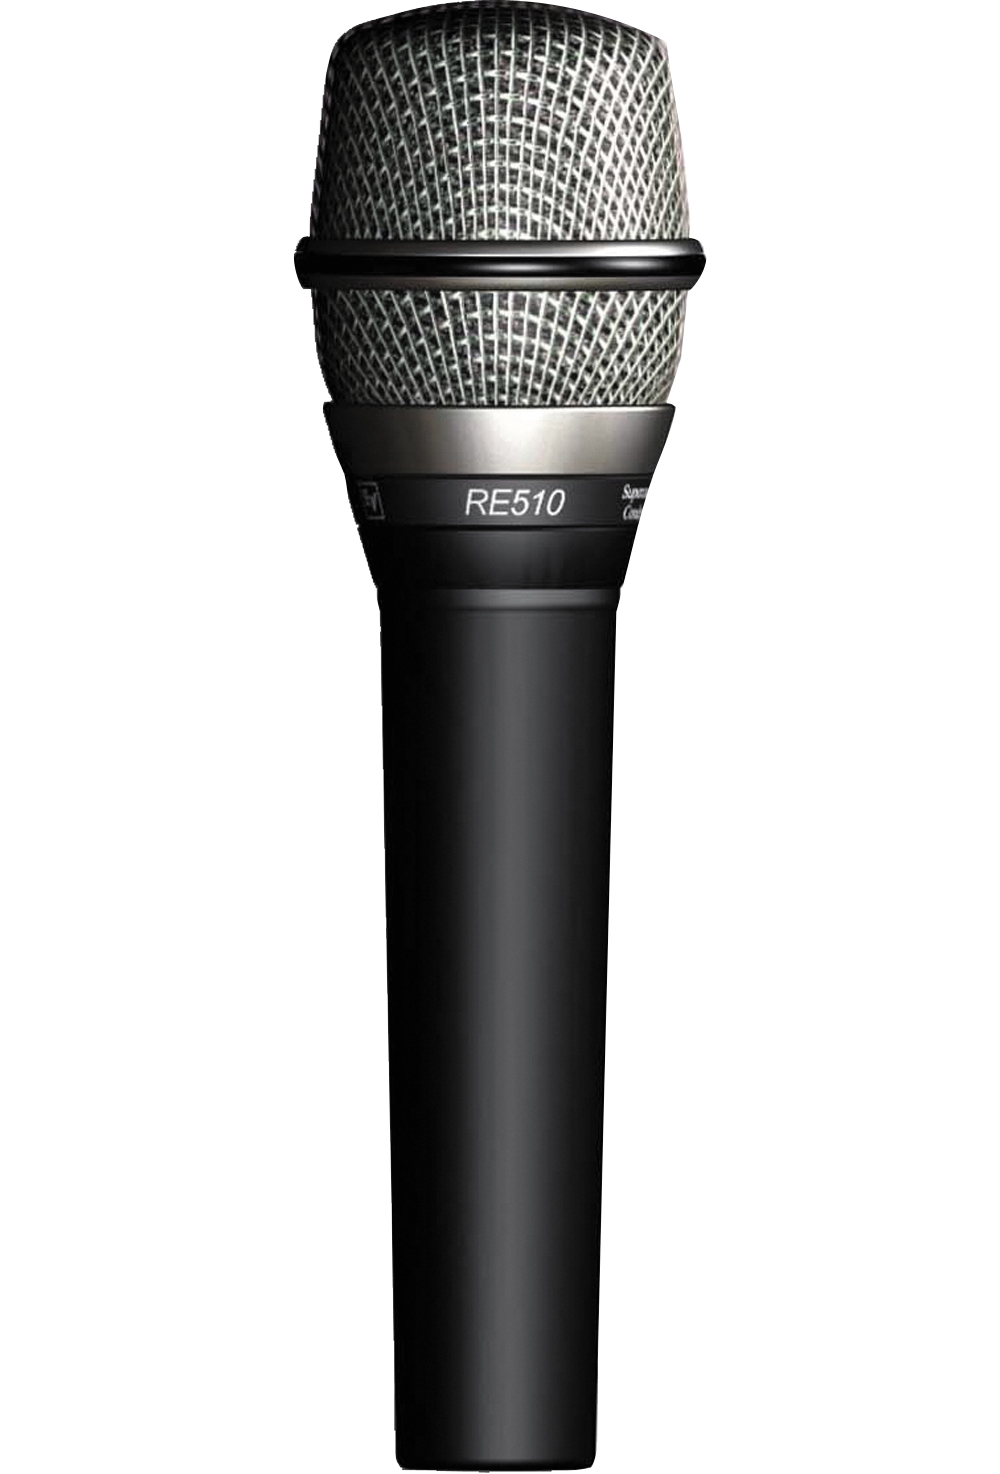 Electro-Voice RE510 Handheld Condenser Supercardioid Vocal Microphone by Electro-Voice